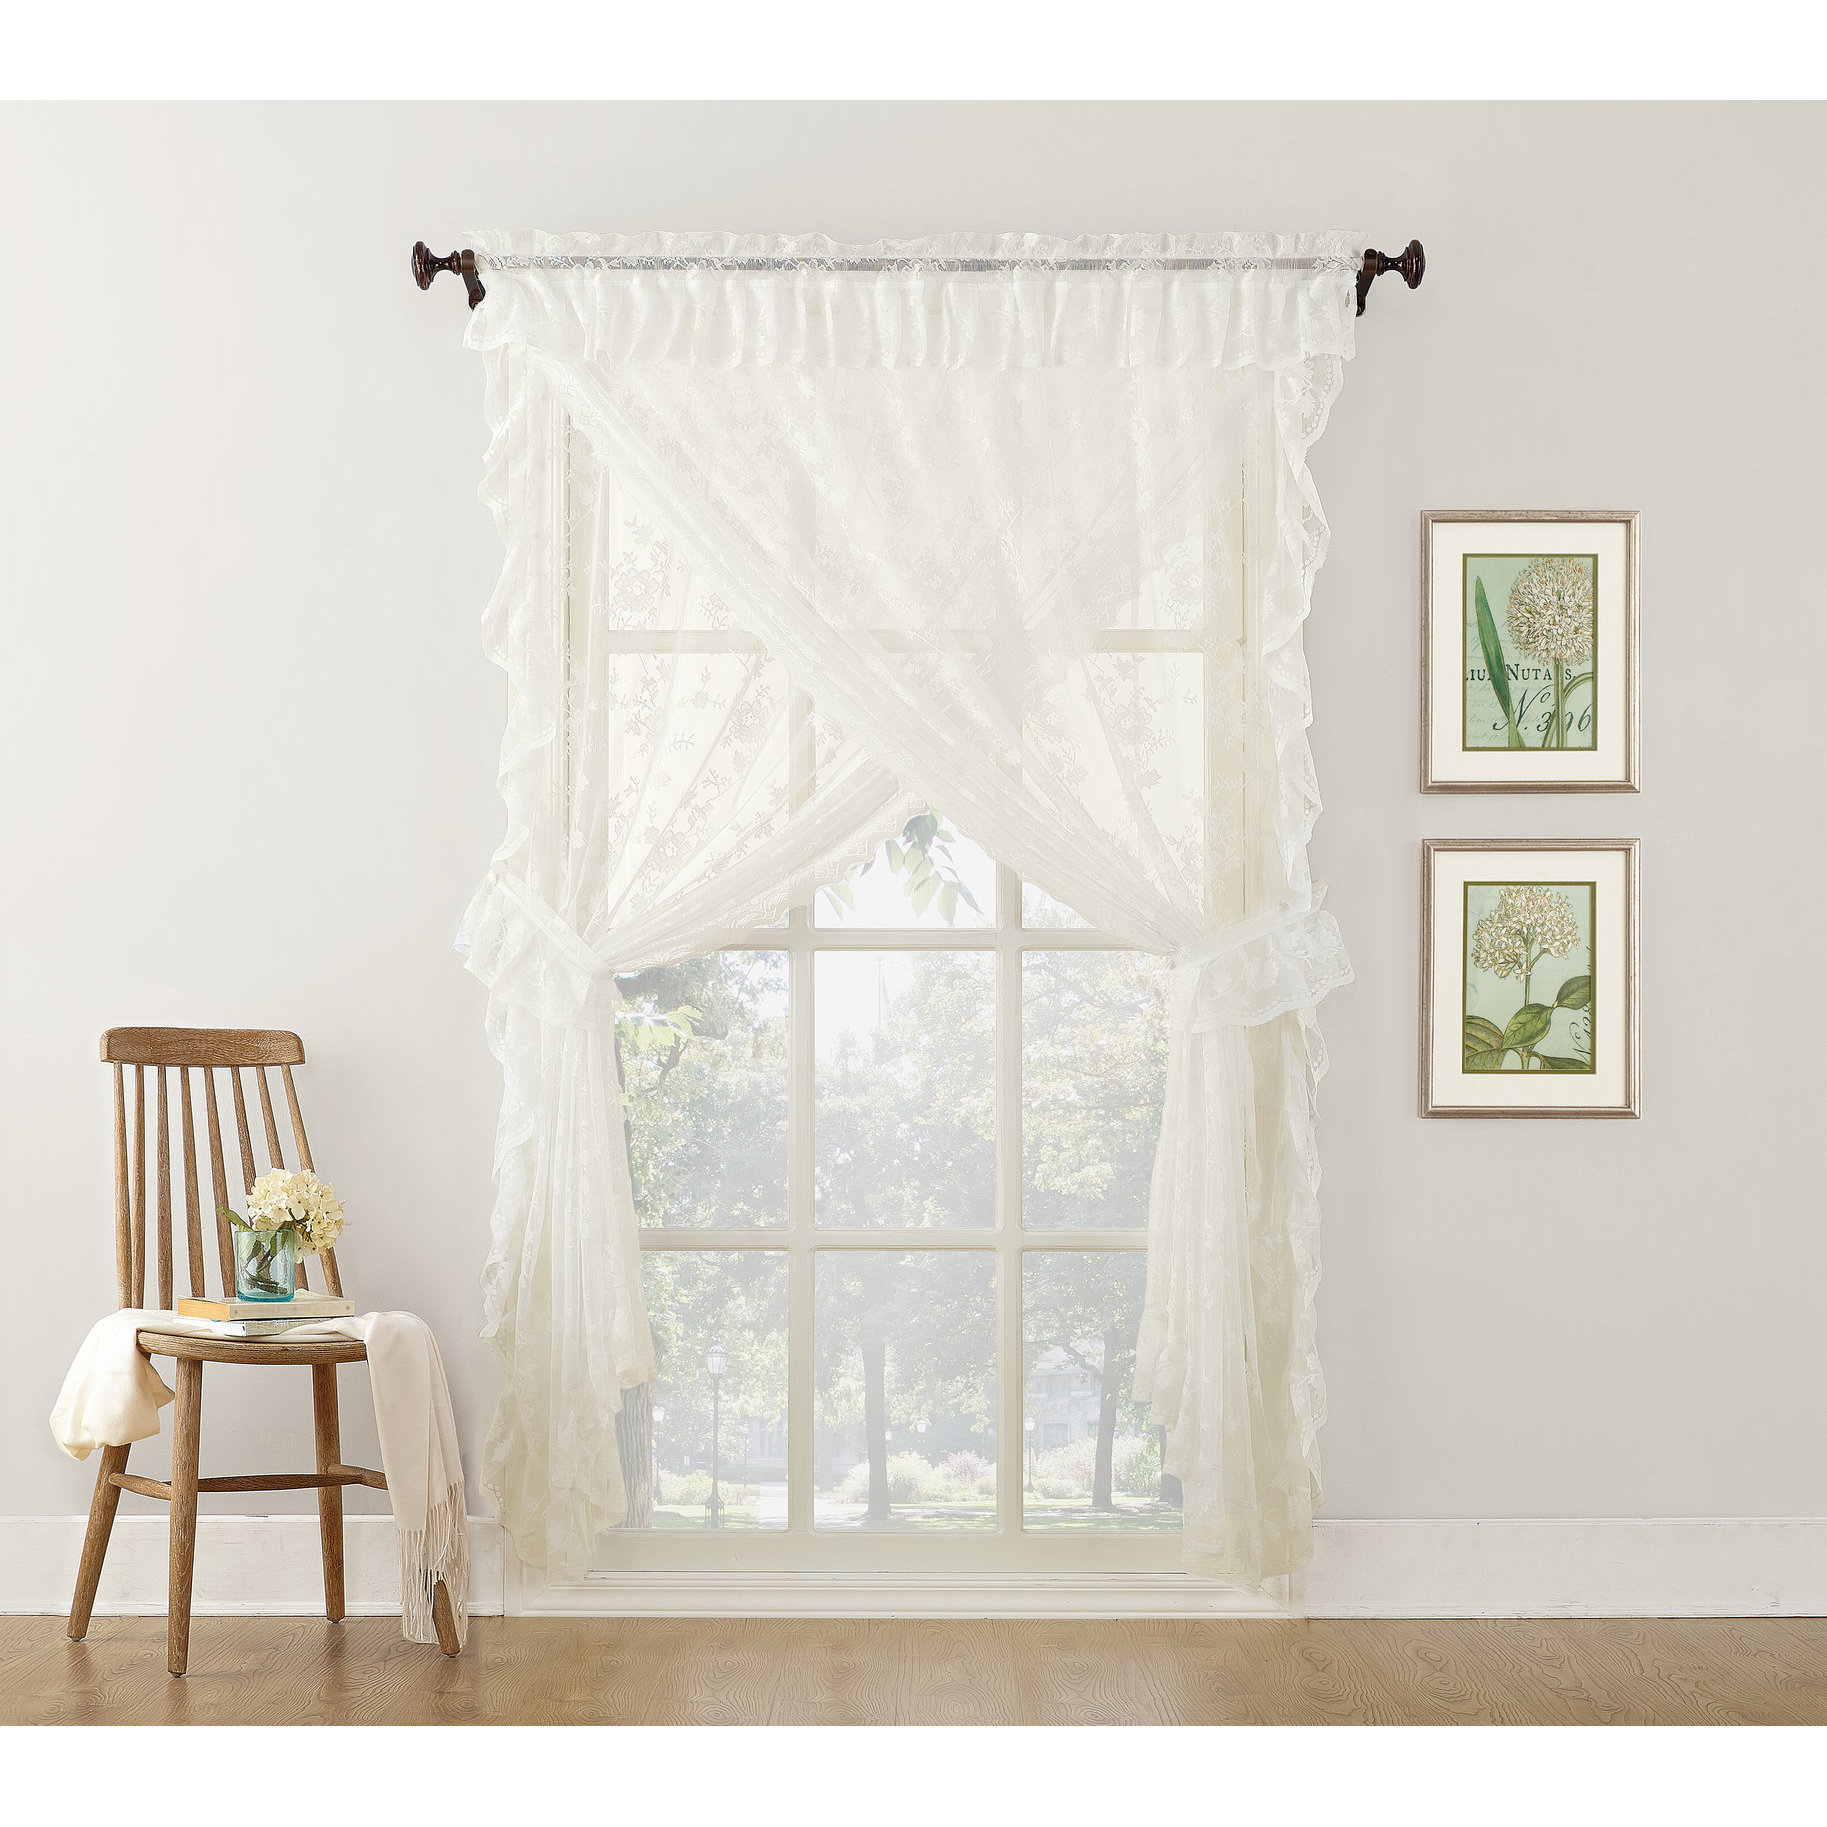 No 918 Alison Priscilla Ruffled Fl Lace Sheer 5 Piece Curtain Set Free Shipping On Orders Over 45 16402431